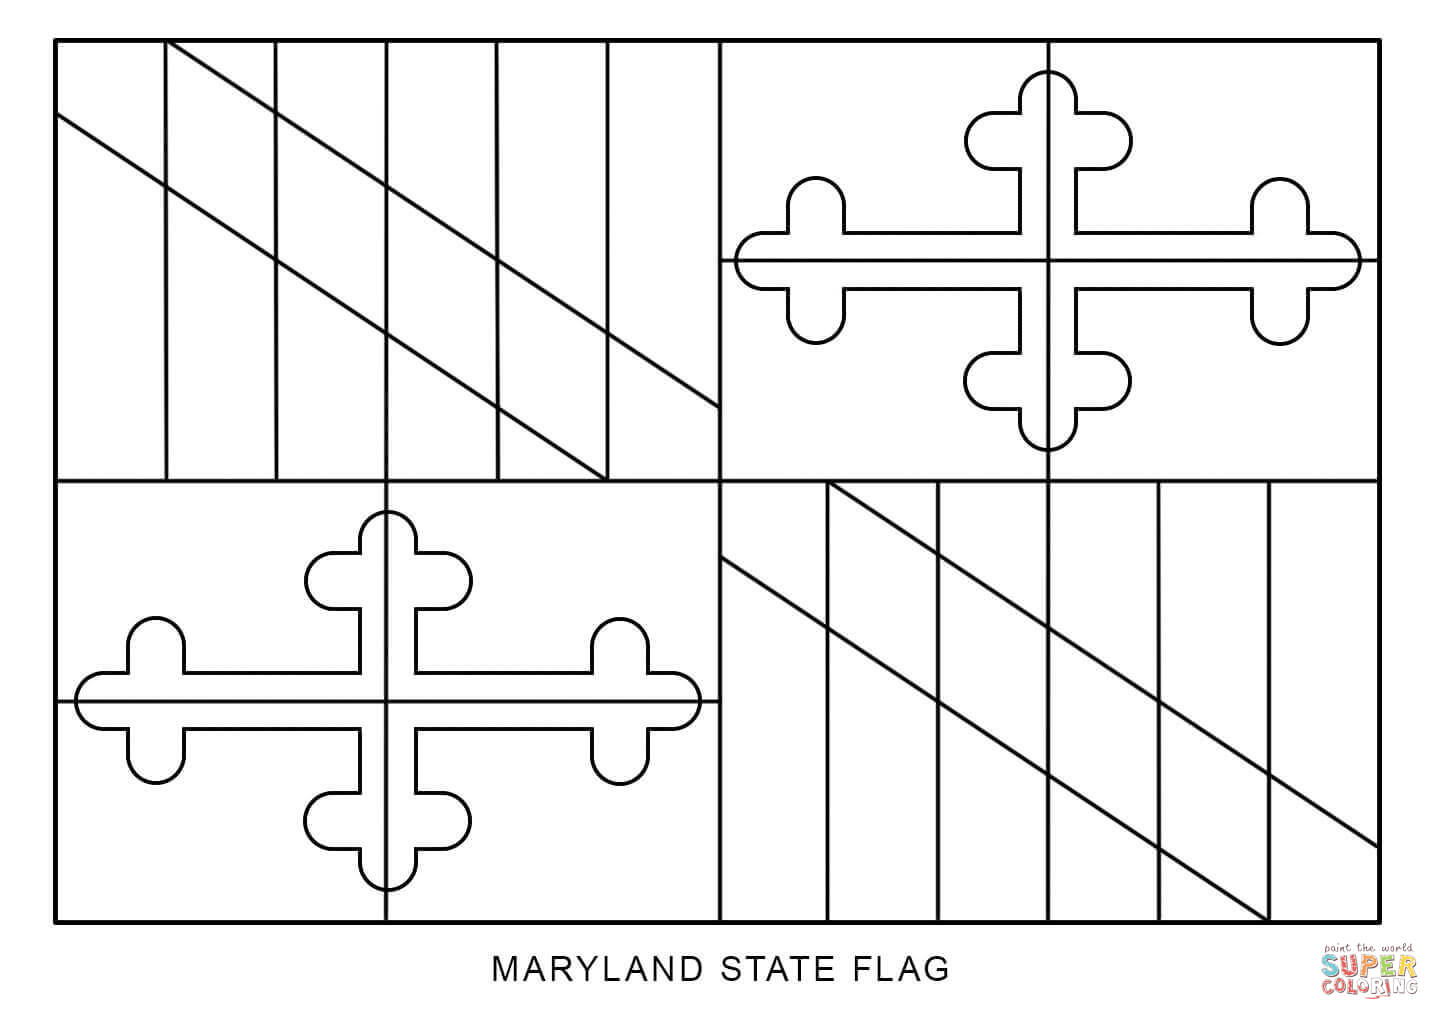 maryland state flag coloring page maryland state flag coloring page coloring home coloring page maryland state flag